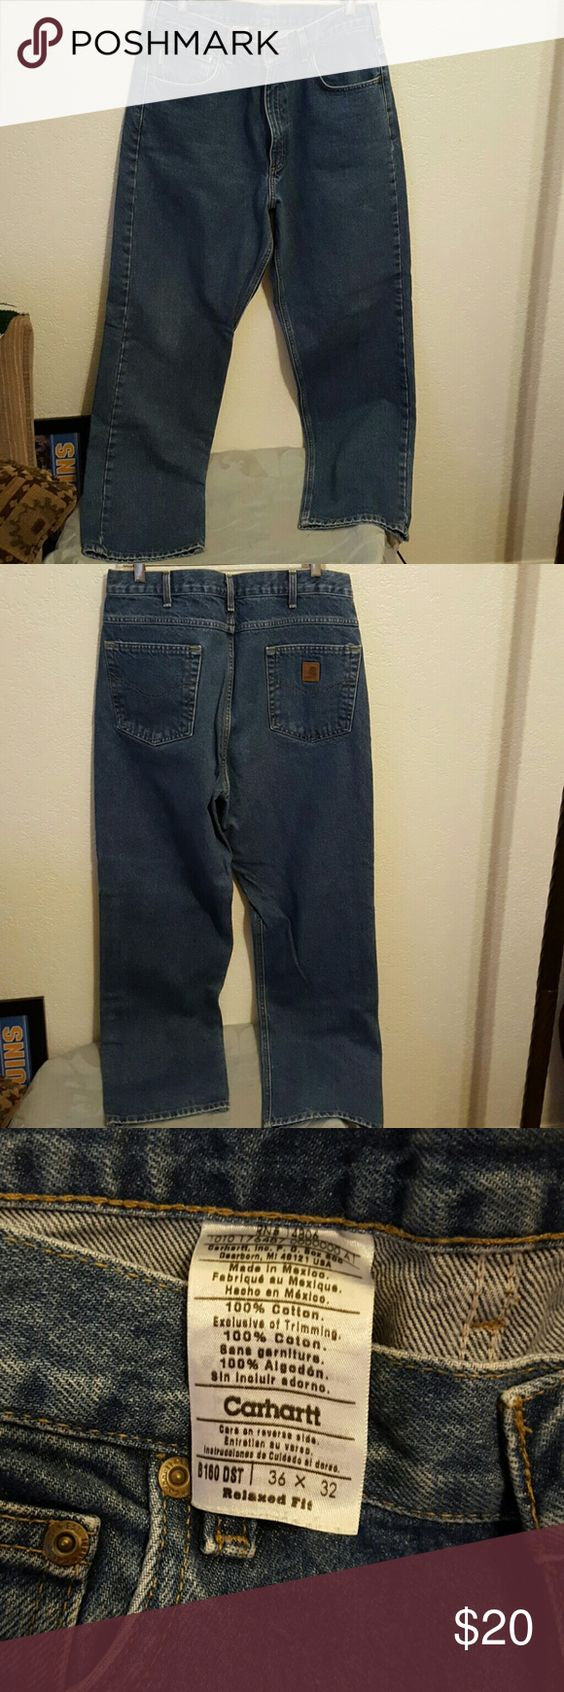 Carhartt Jeans New never worn without tags men's work pants Carhartt Jeans very durable the denim is very thick great for working Outdoors perfect condition Carhartt Jeans Bootcut